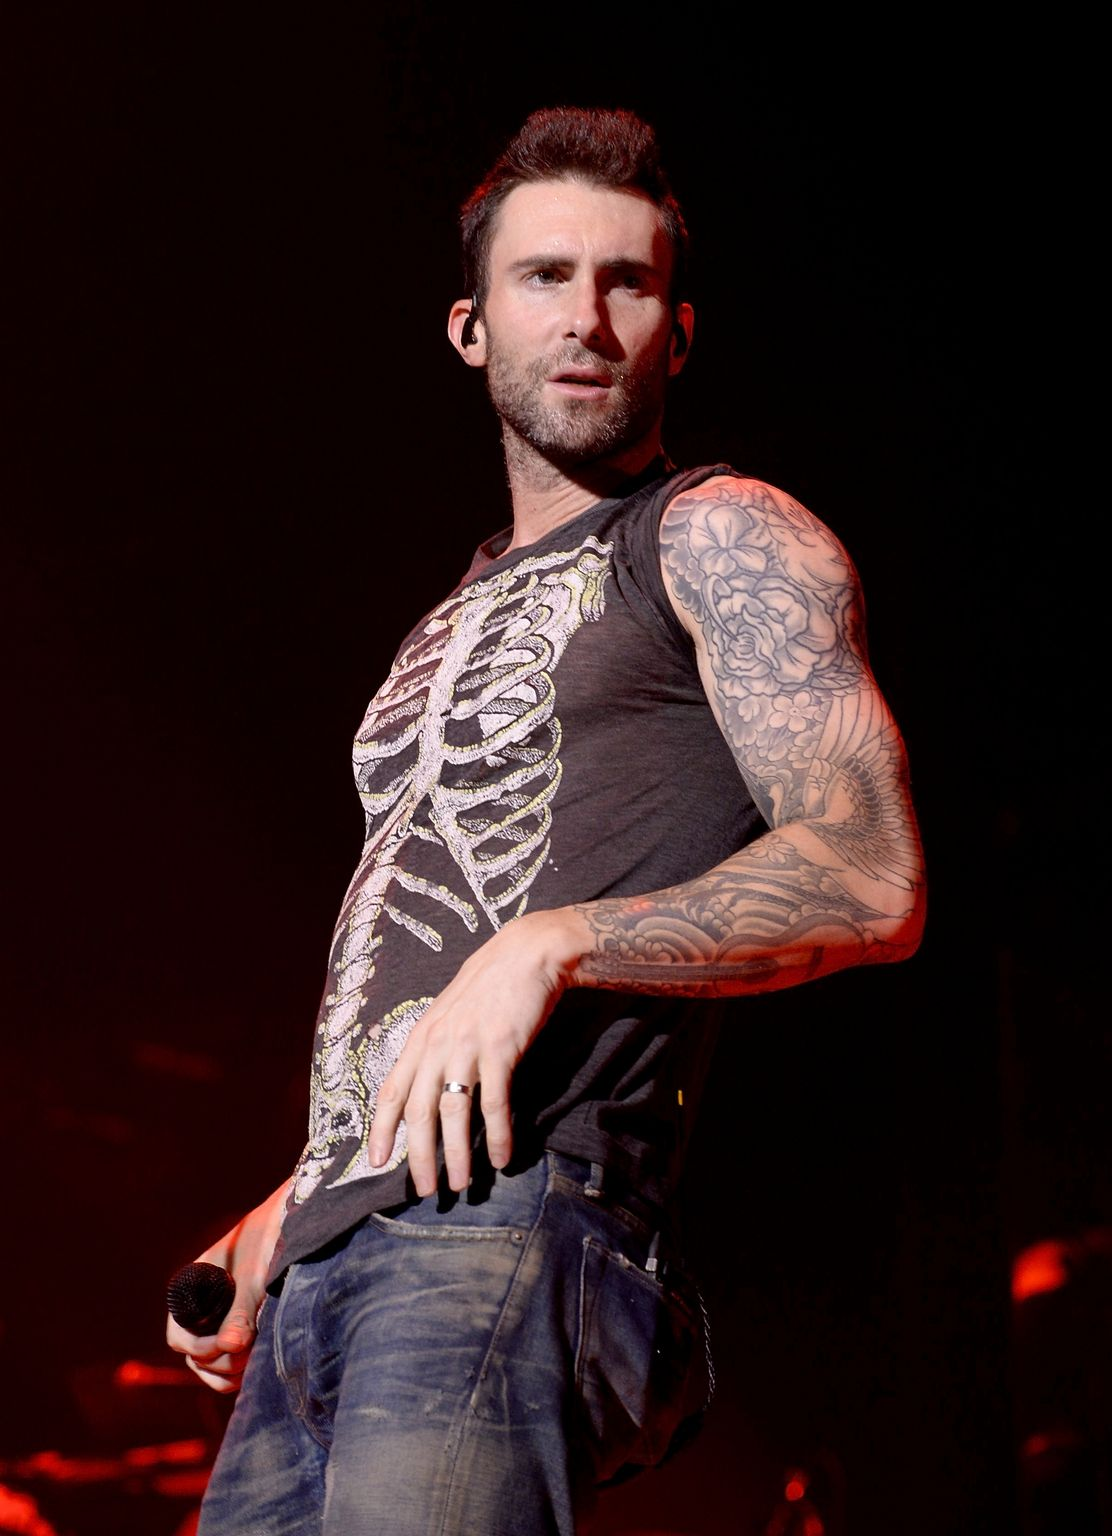 Adam levine and maroon in concert ate barclaycard center for Maroon 5 tattoos hindu